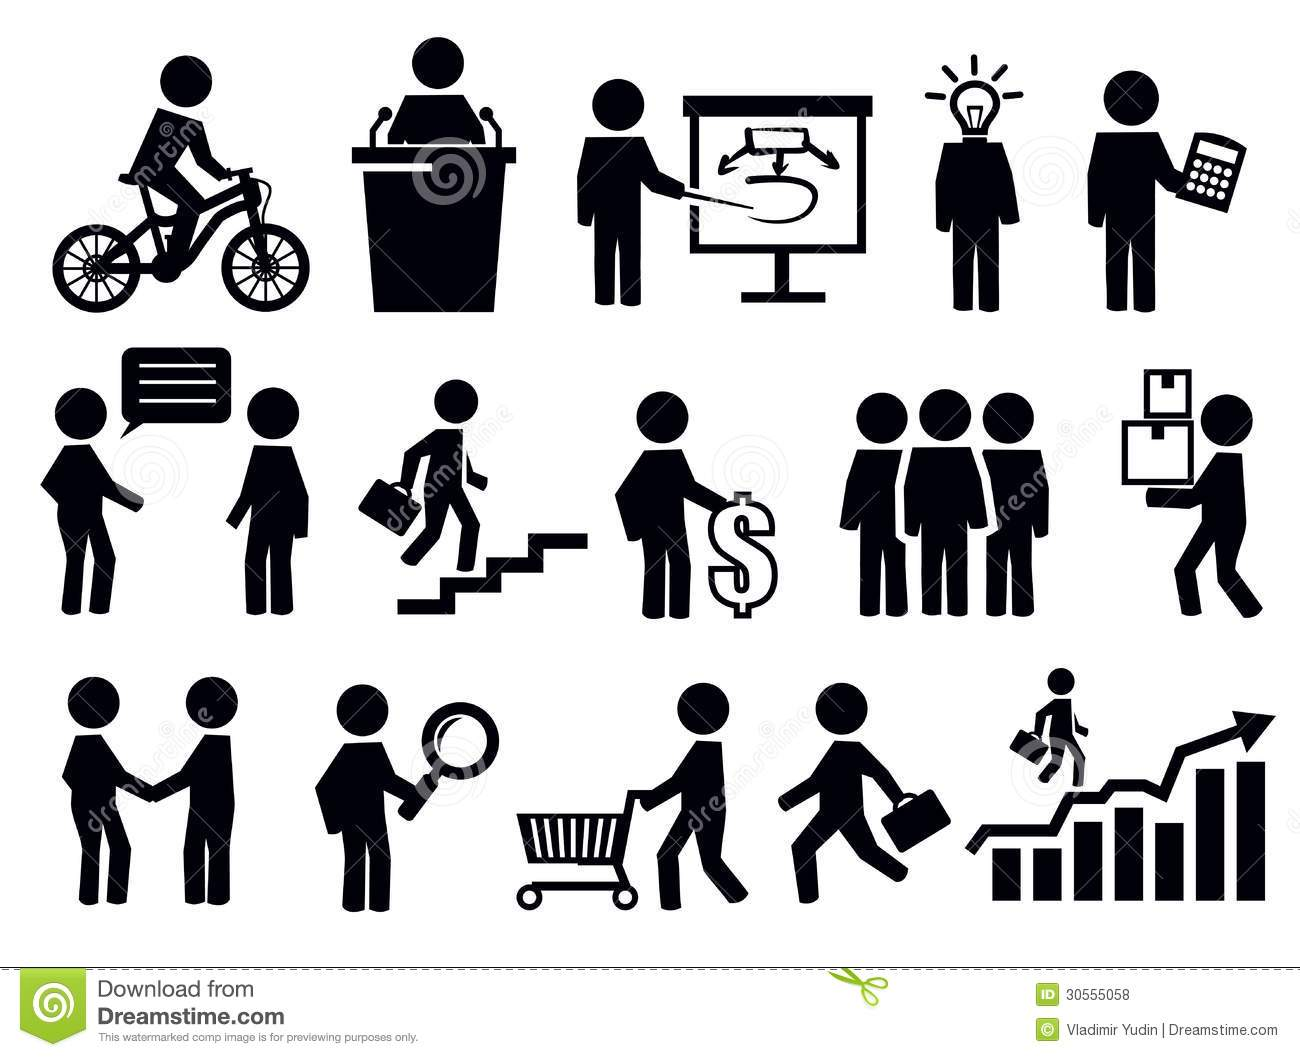 Business People Icons Royalty Free Stock Photos - Image: 30555058